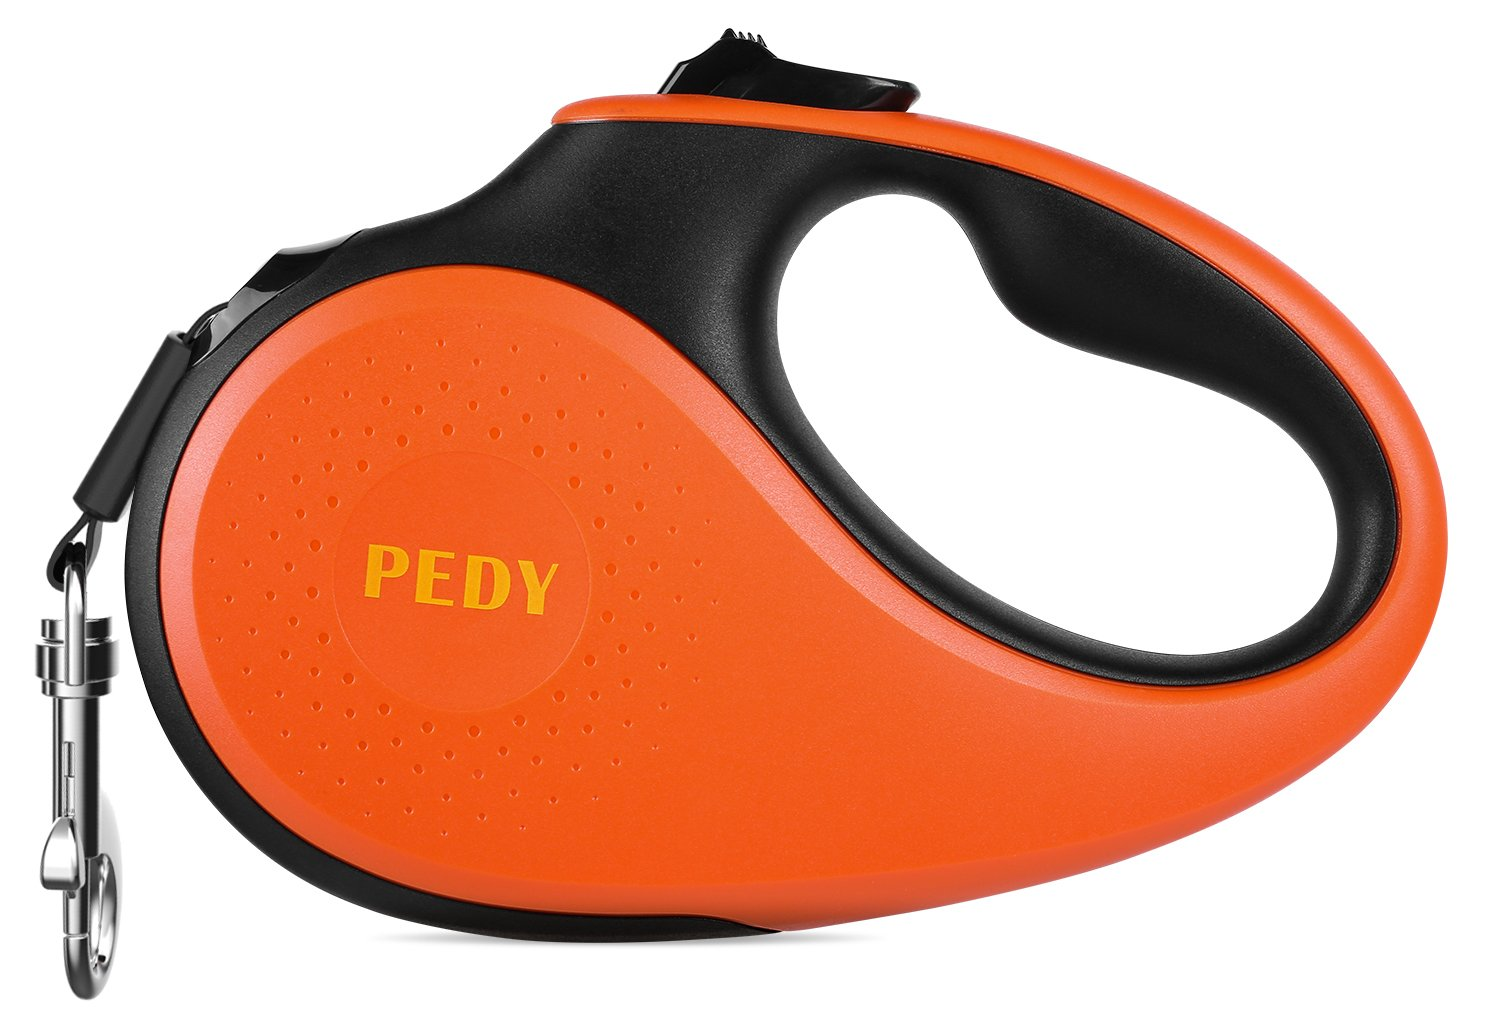 Pedy Retractable Dog Leash, Patented 360°Tangle-Free Heavy Duty Reflective Dog Walking Leash With Anti-Slip Handle; 16 ft Strong Nylon Tape/Ribbon; One-Handed Brake, Pause, Lock(M-Under 55 LBS)